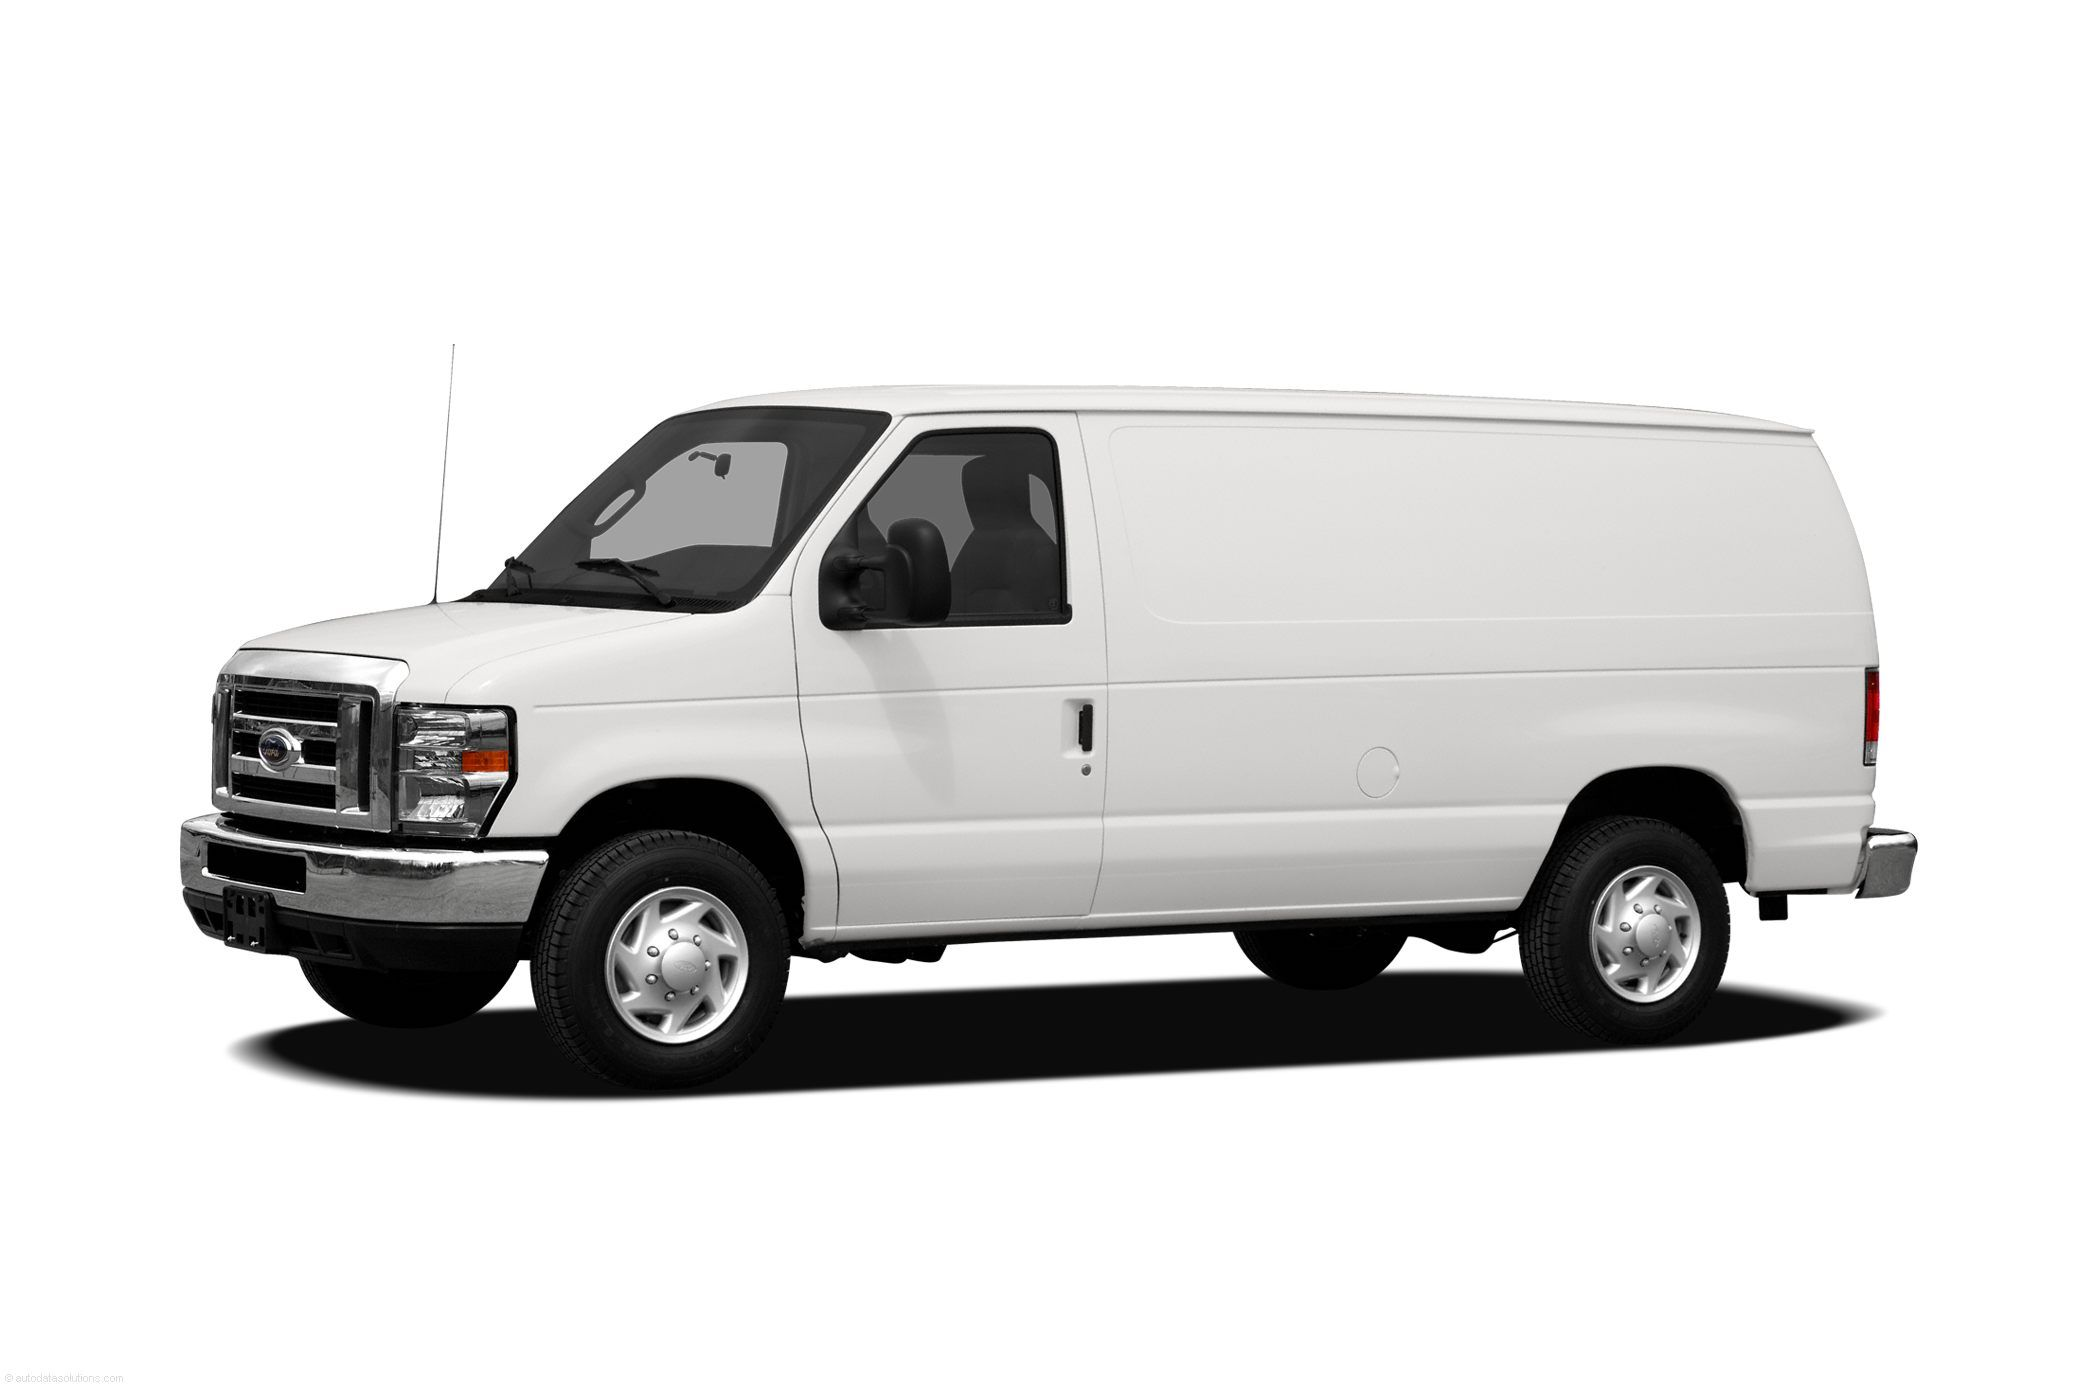 Used Fleet Cargo Vans For Sale Mini Van Cargo Vans For Sale Van For Sale